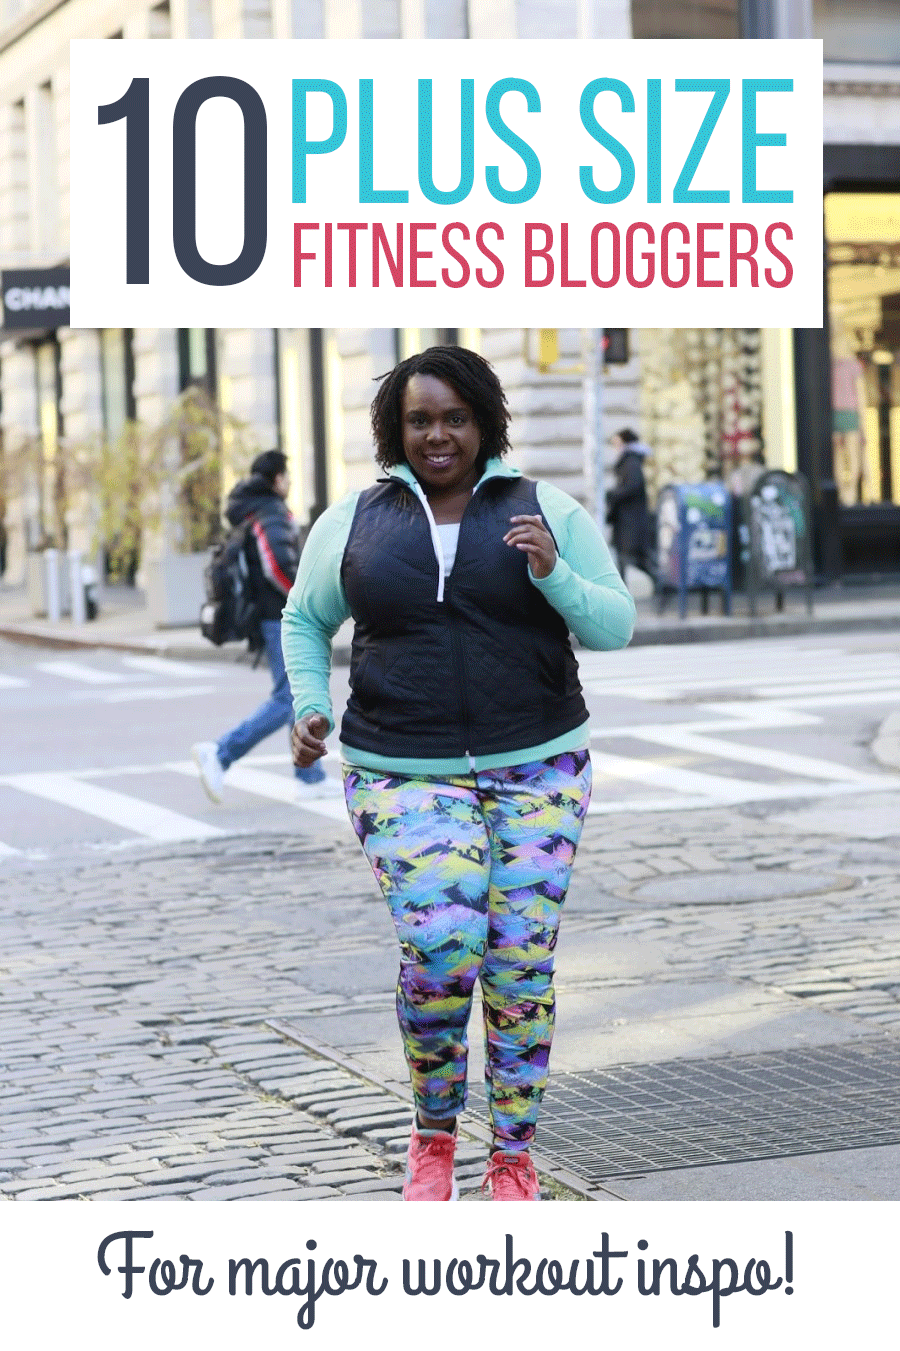 10 Plus Size Fitness Bloggers To Follow For Major Workout Inspiration